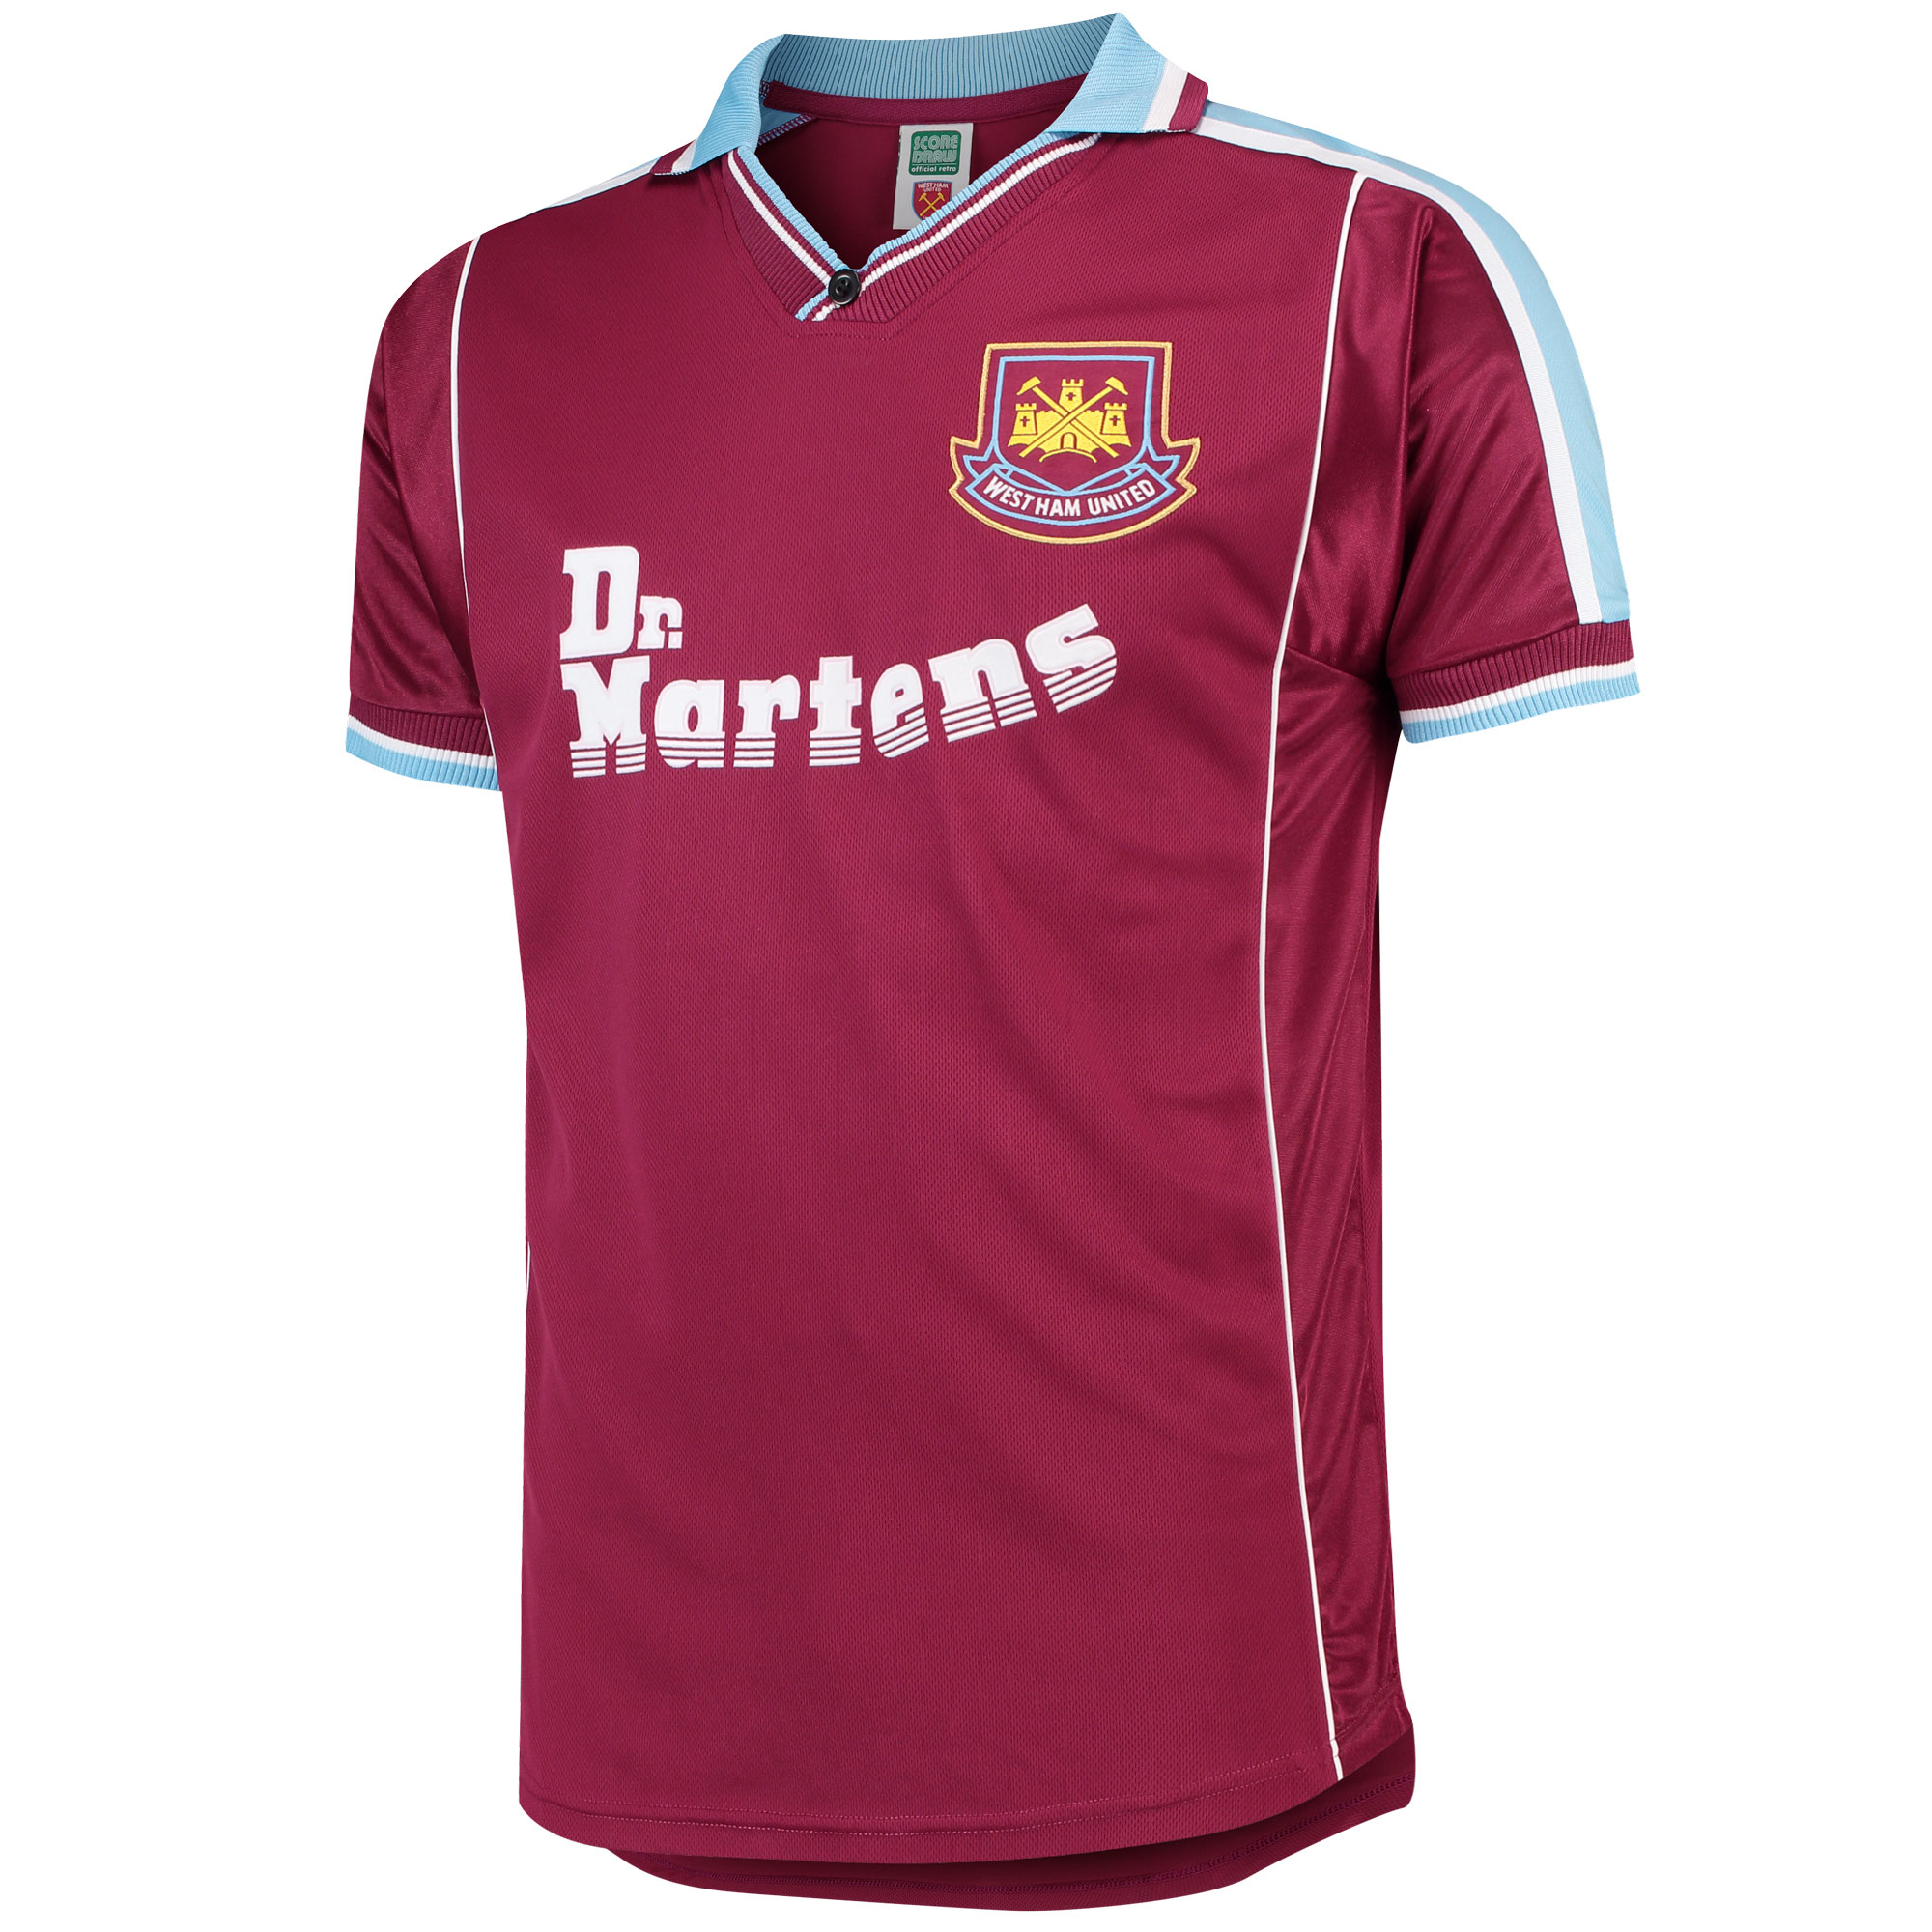 West Ham United 2000 Home shirt